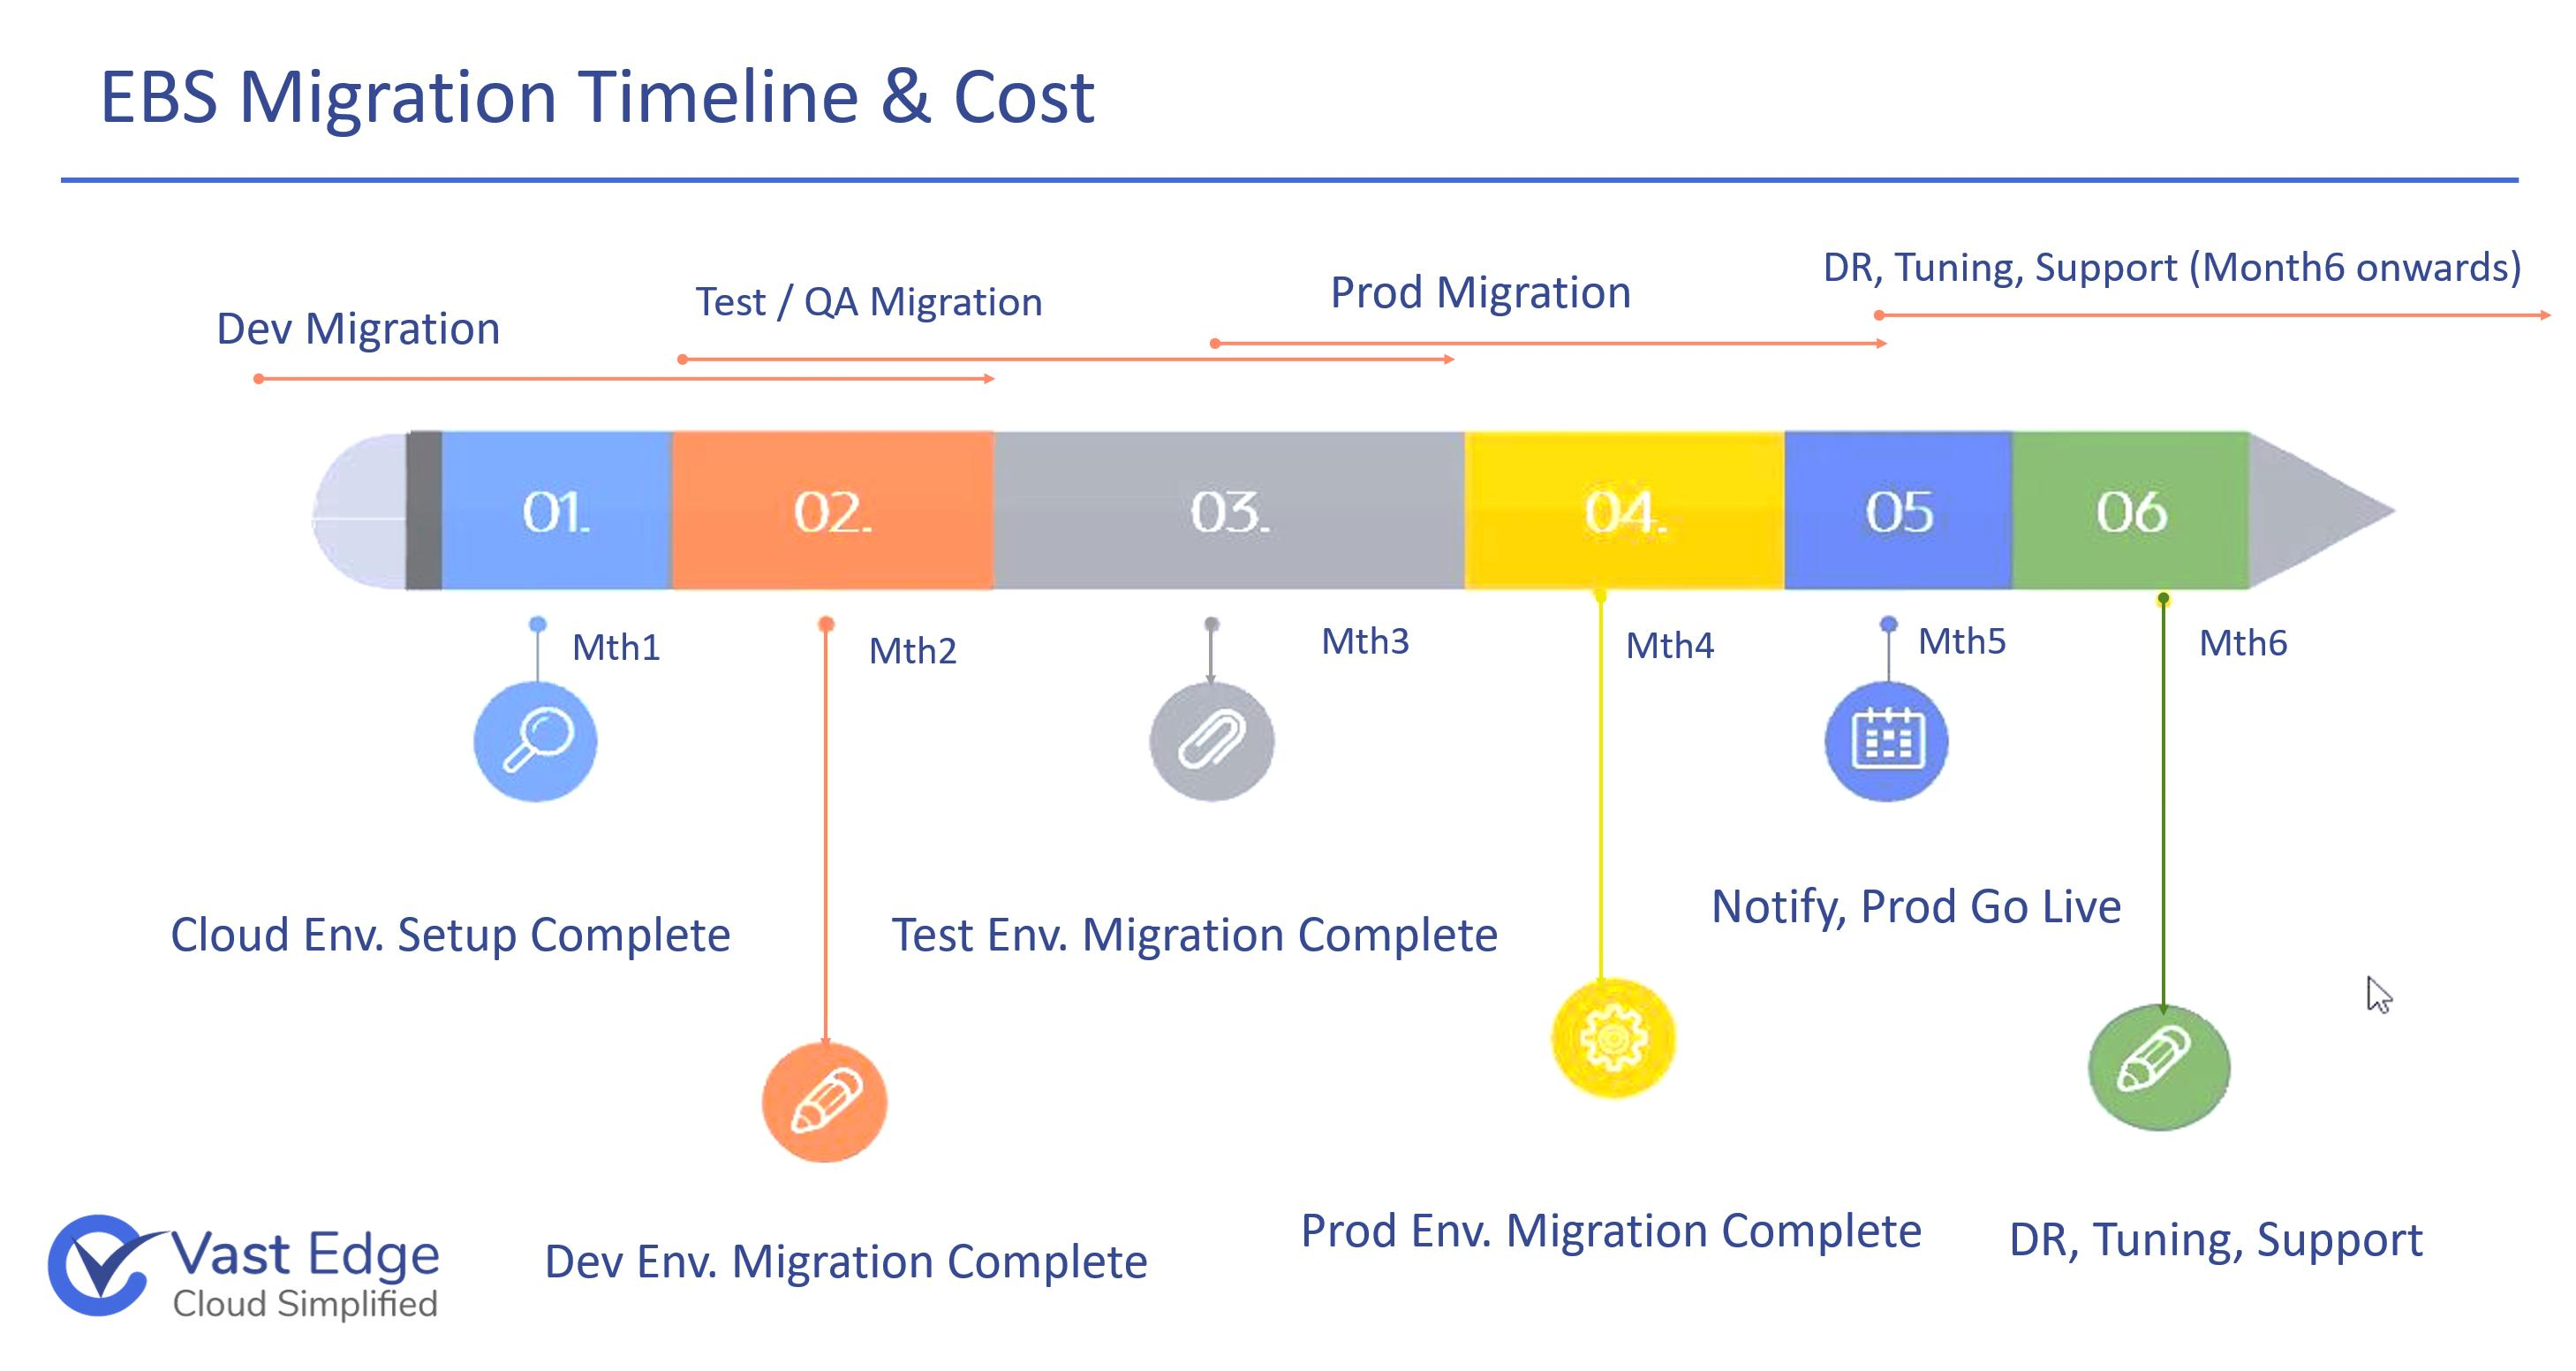 ebs-migration-timeline-and-cost-by-vastedge